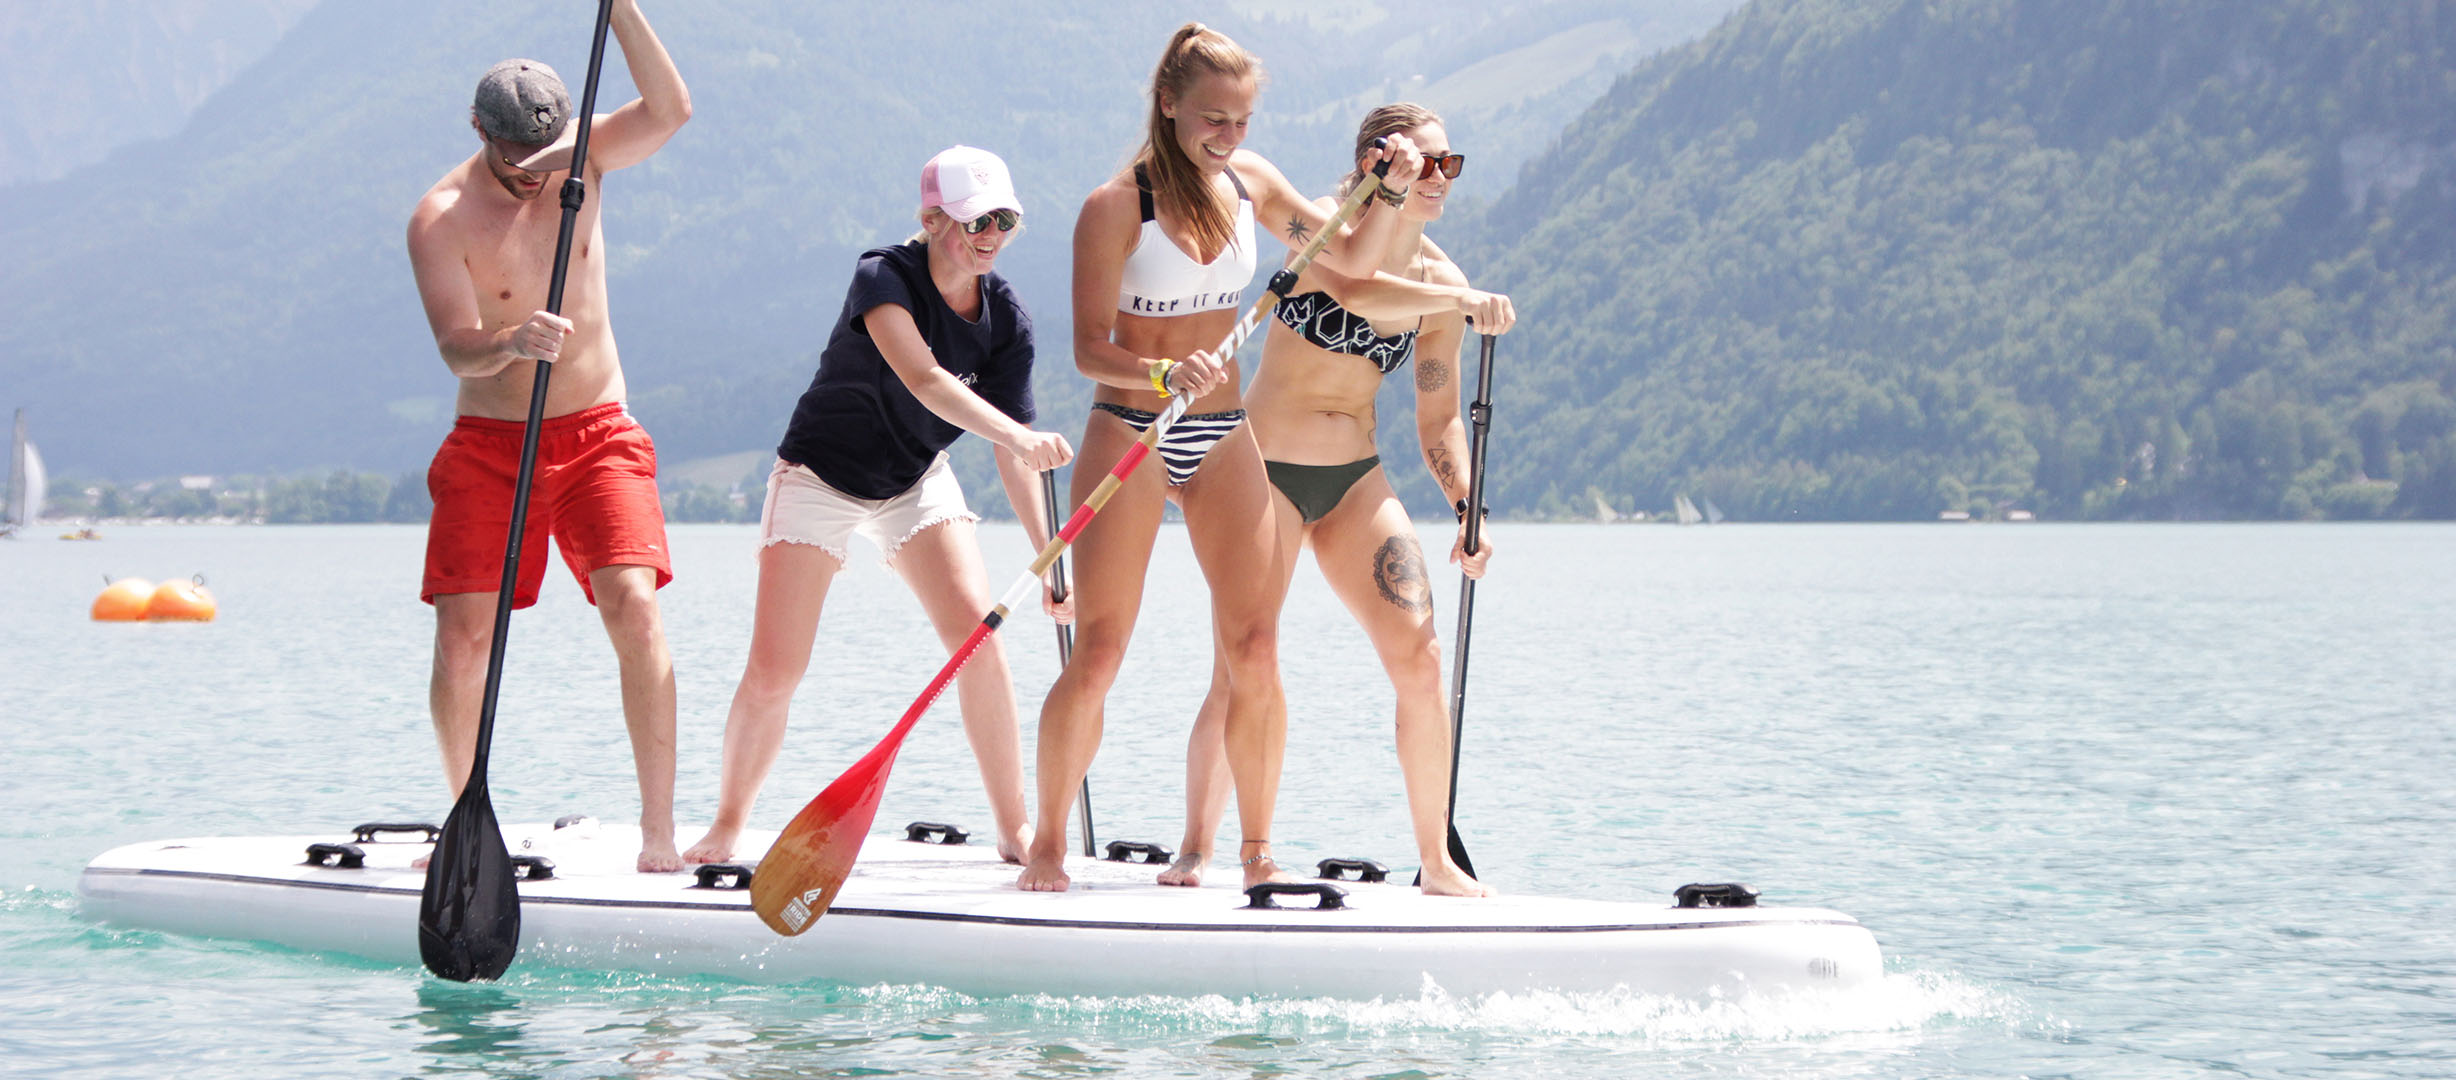 Big SUP - Große Stand up Paddle Boards